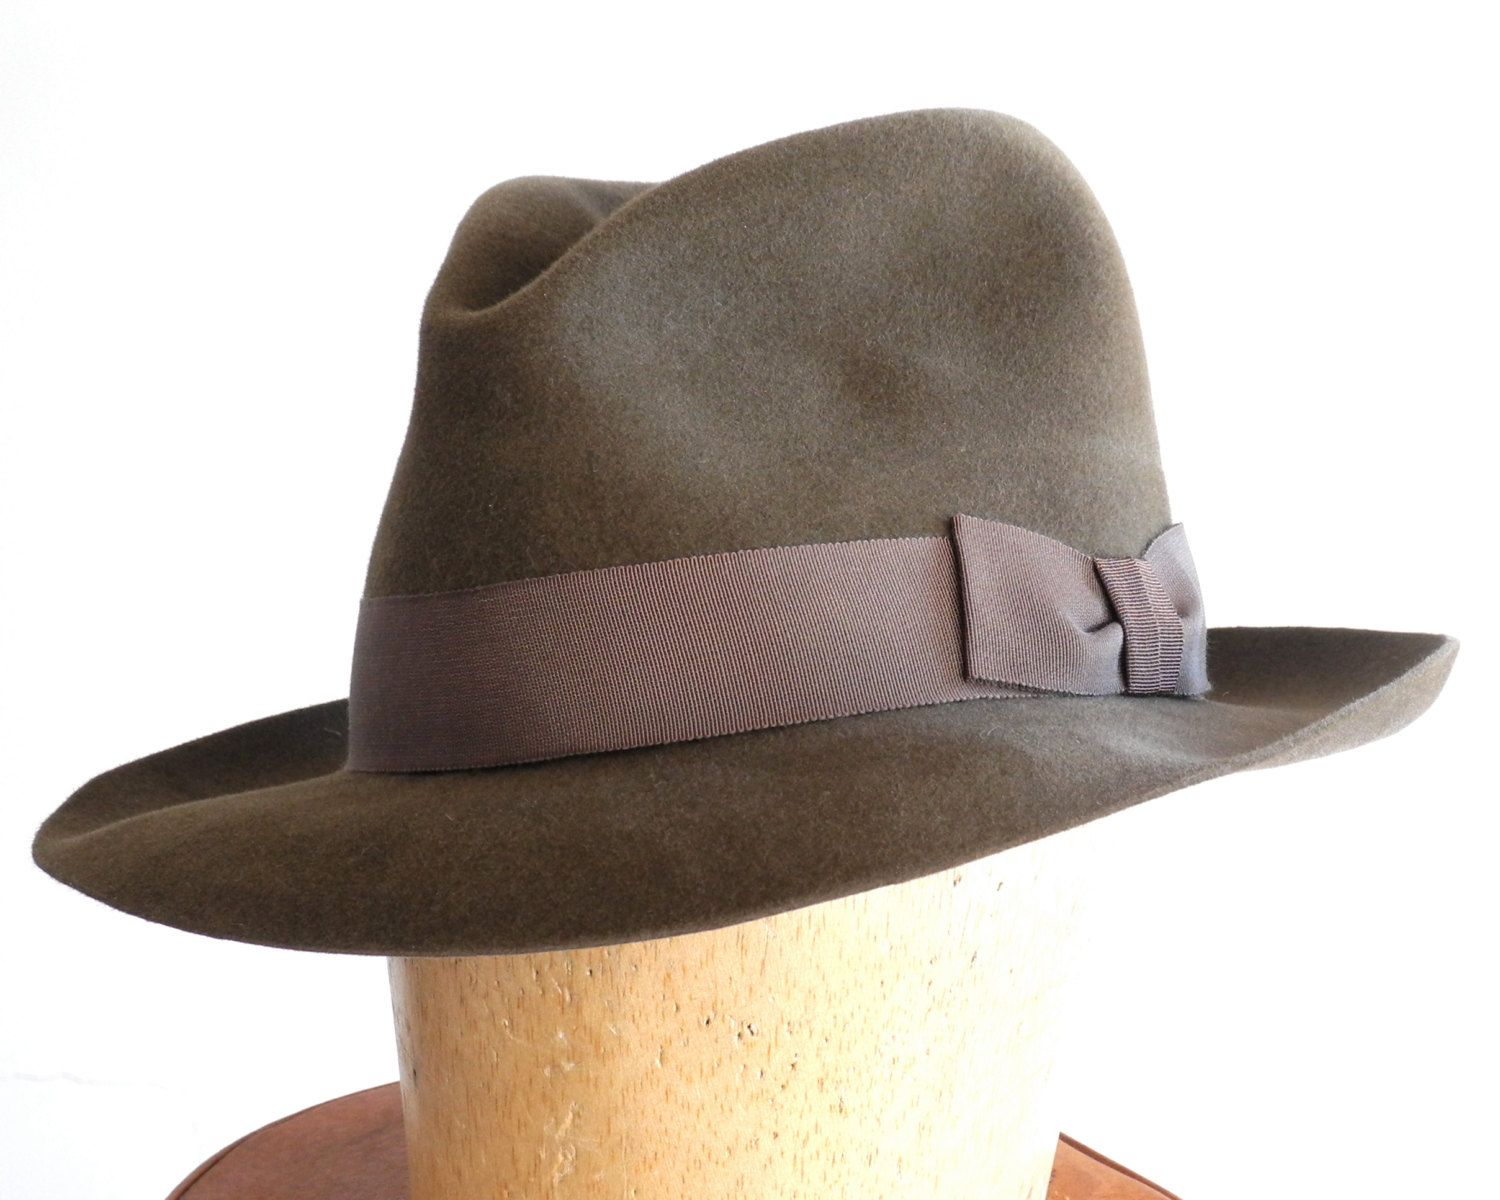 e40b8f7bb65 Mens Felt Fedora Hat- Men s Hat-1940s Mens Hat- 1930s Mens Hat- Spring  Fashion-Fall Fashion by KatarinaHats on Etsy